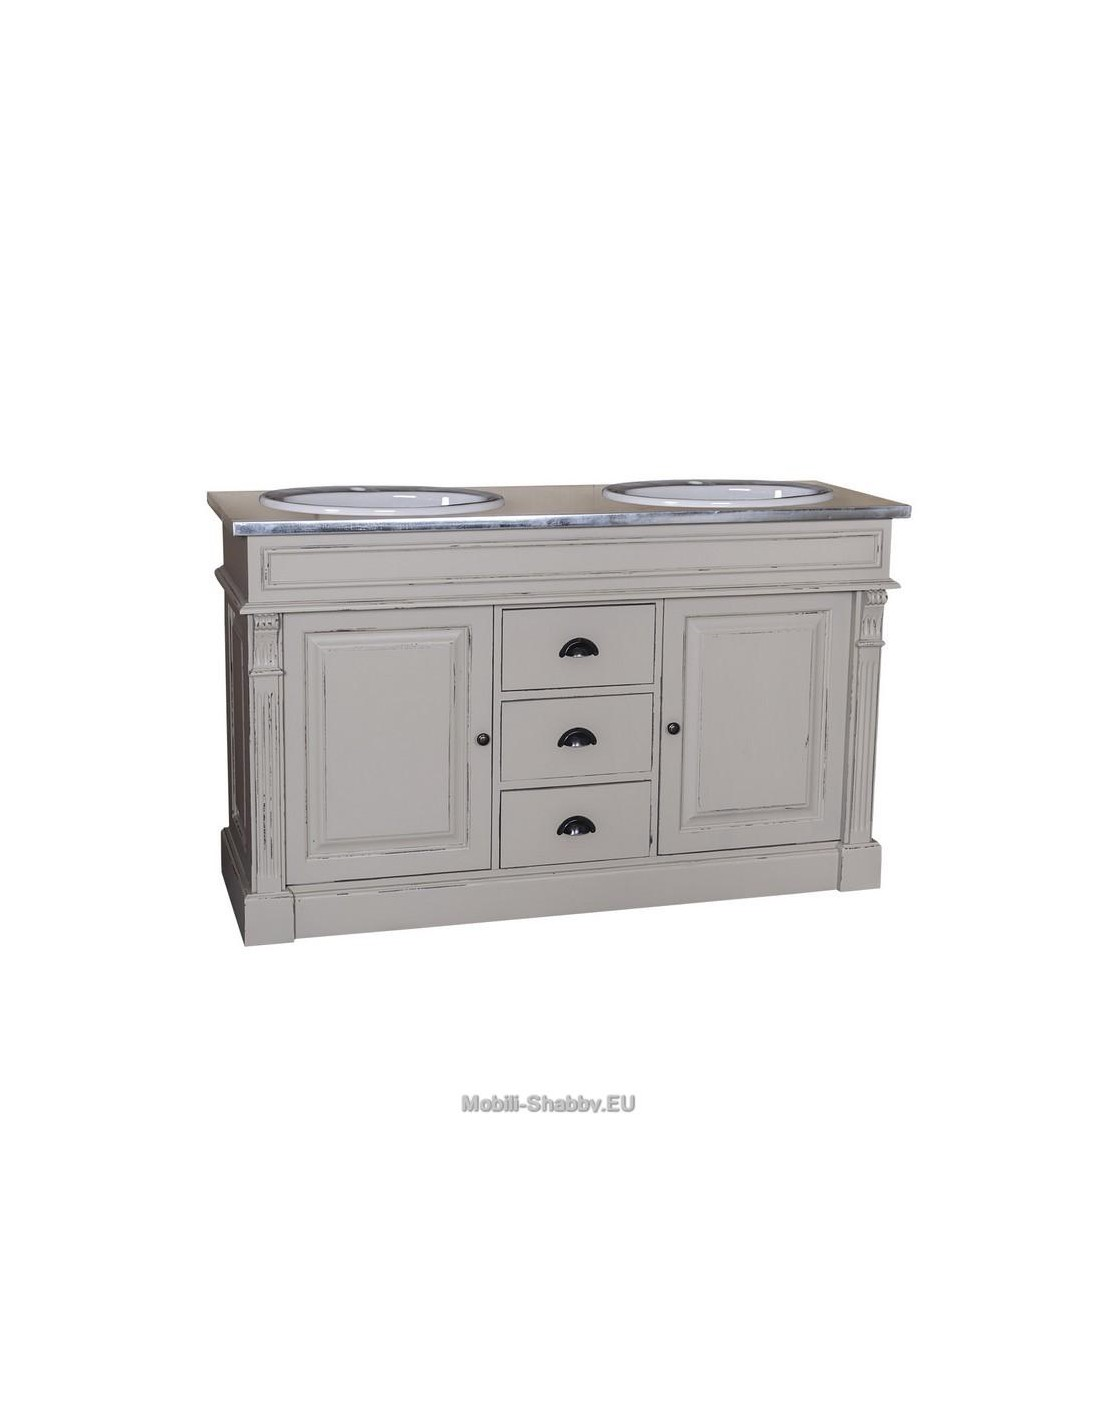 mobile bagno sottolavabo country MS4001 - Mobili-Shabby.EU by Orissa